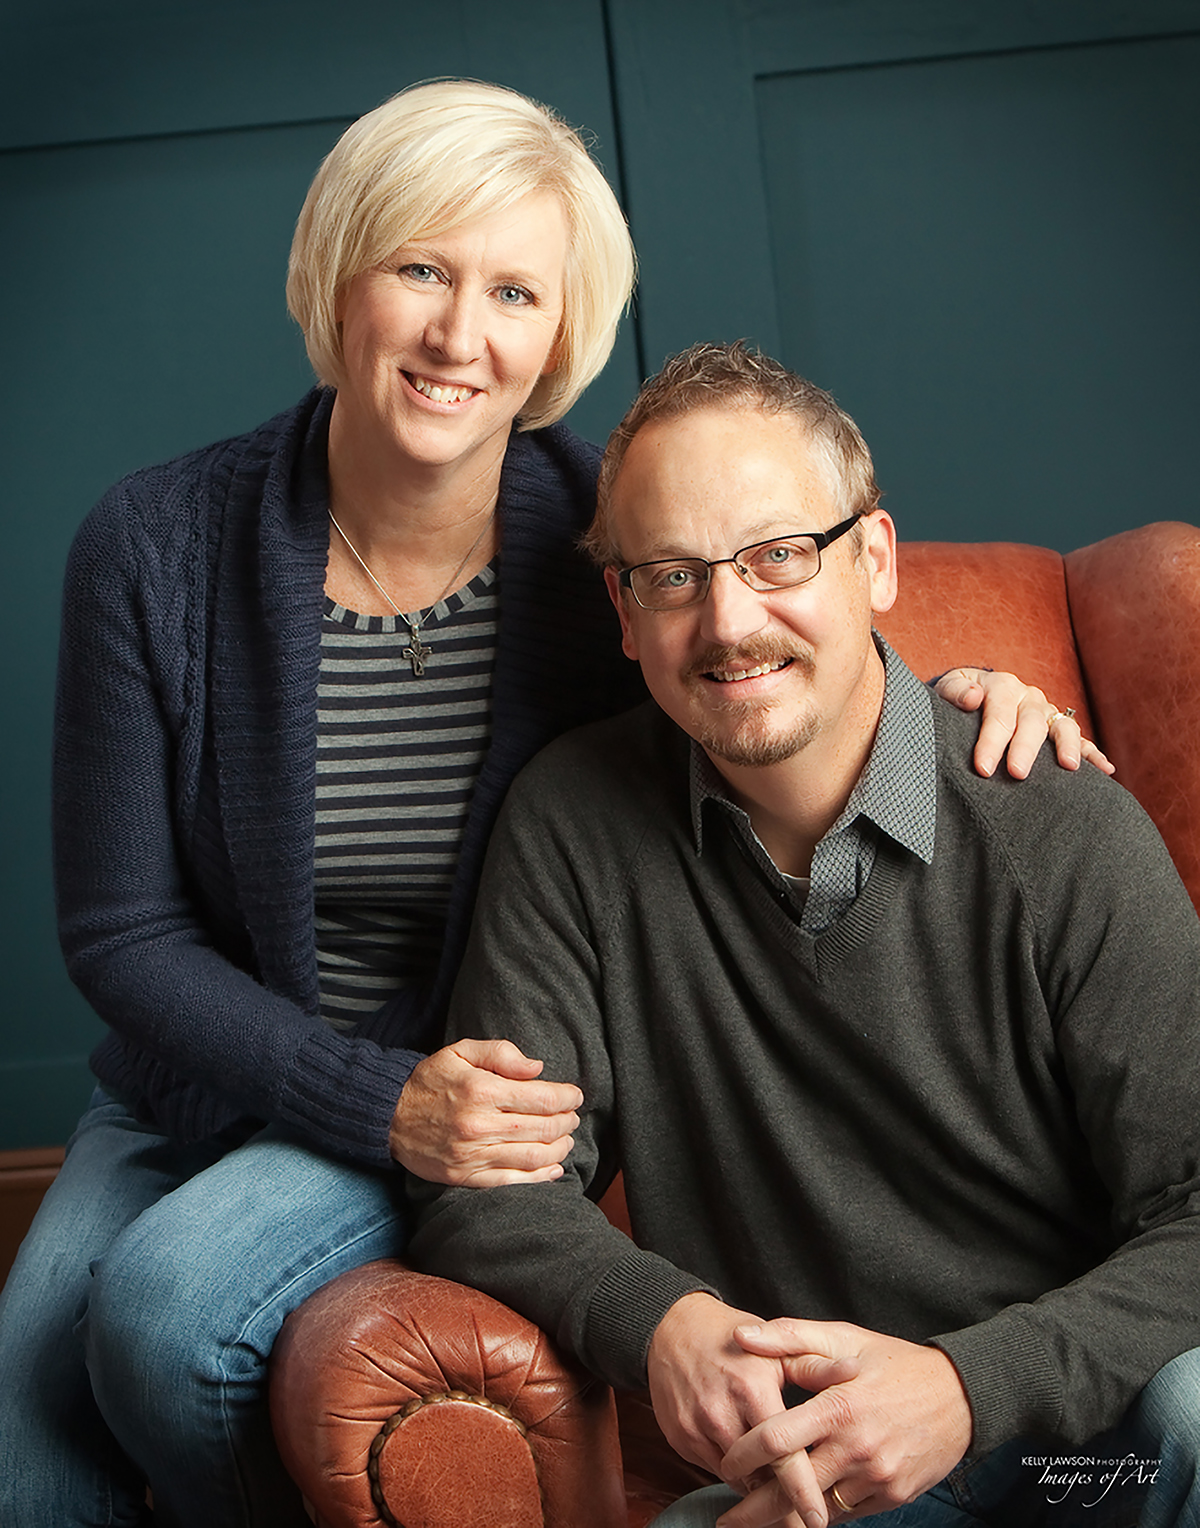 God's Resort Executive Director Jay St Clair with his wife, Resident Care Director Julie St. Clair.